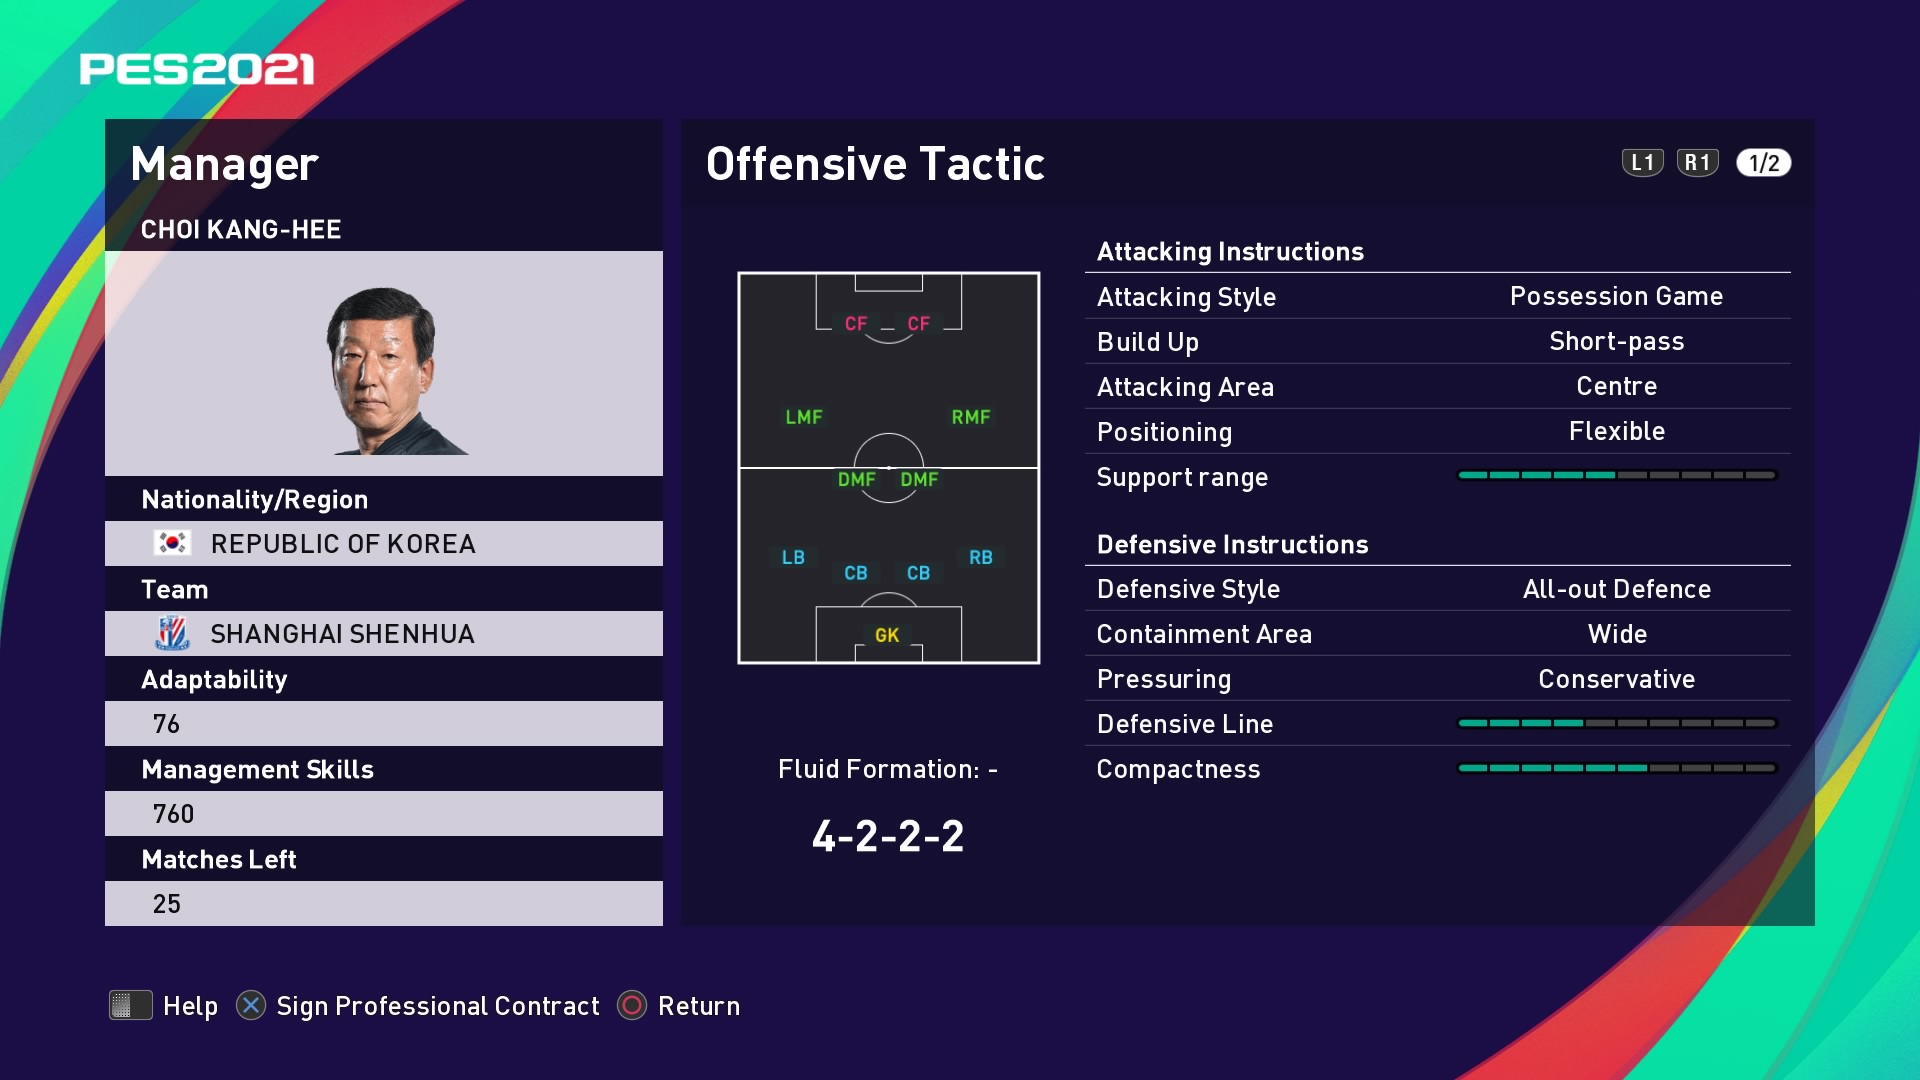 Choi Kang-Hee Offensive Tactic in PES 2021 myClub